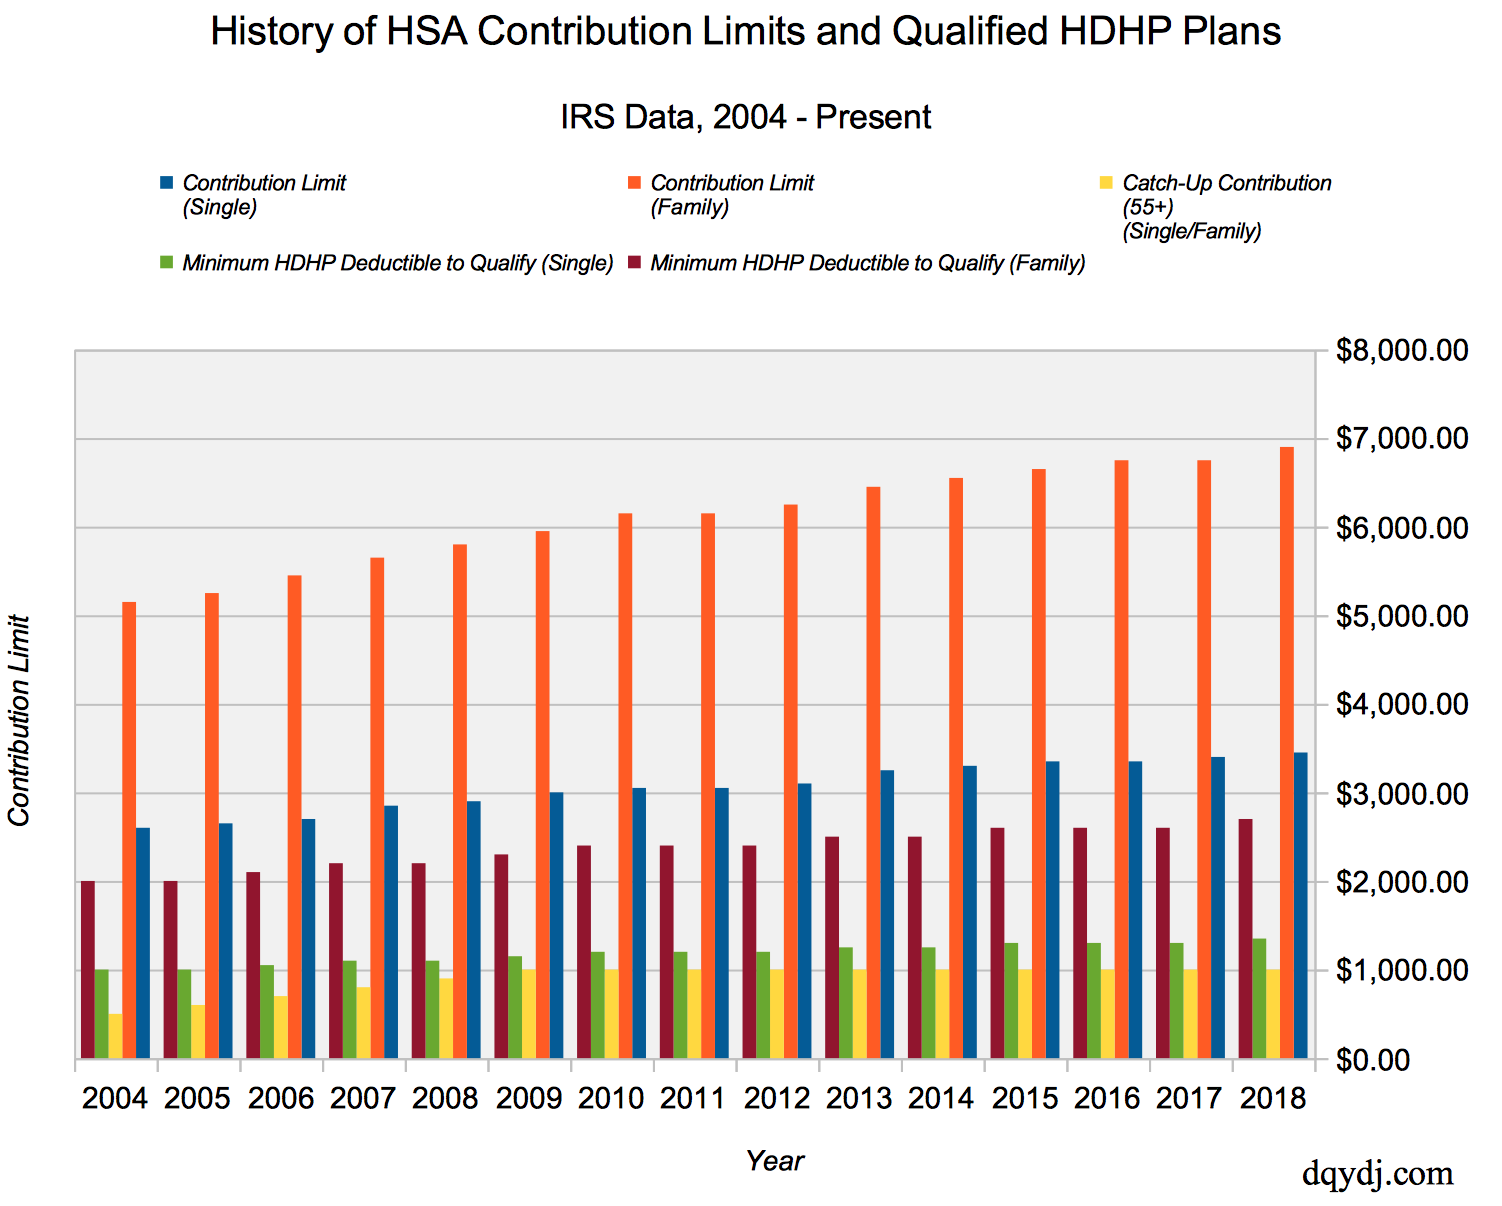 History of the HSA limit for contributions from 2004 until today.